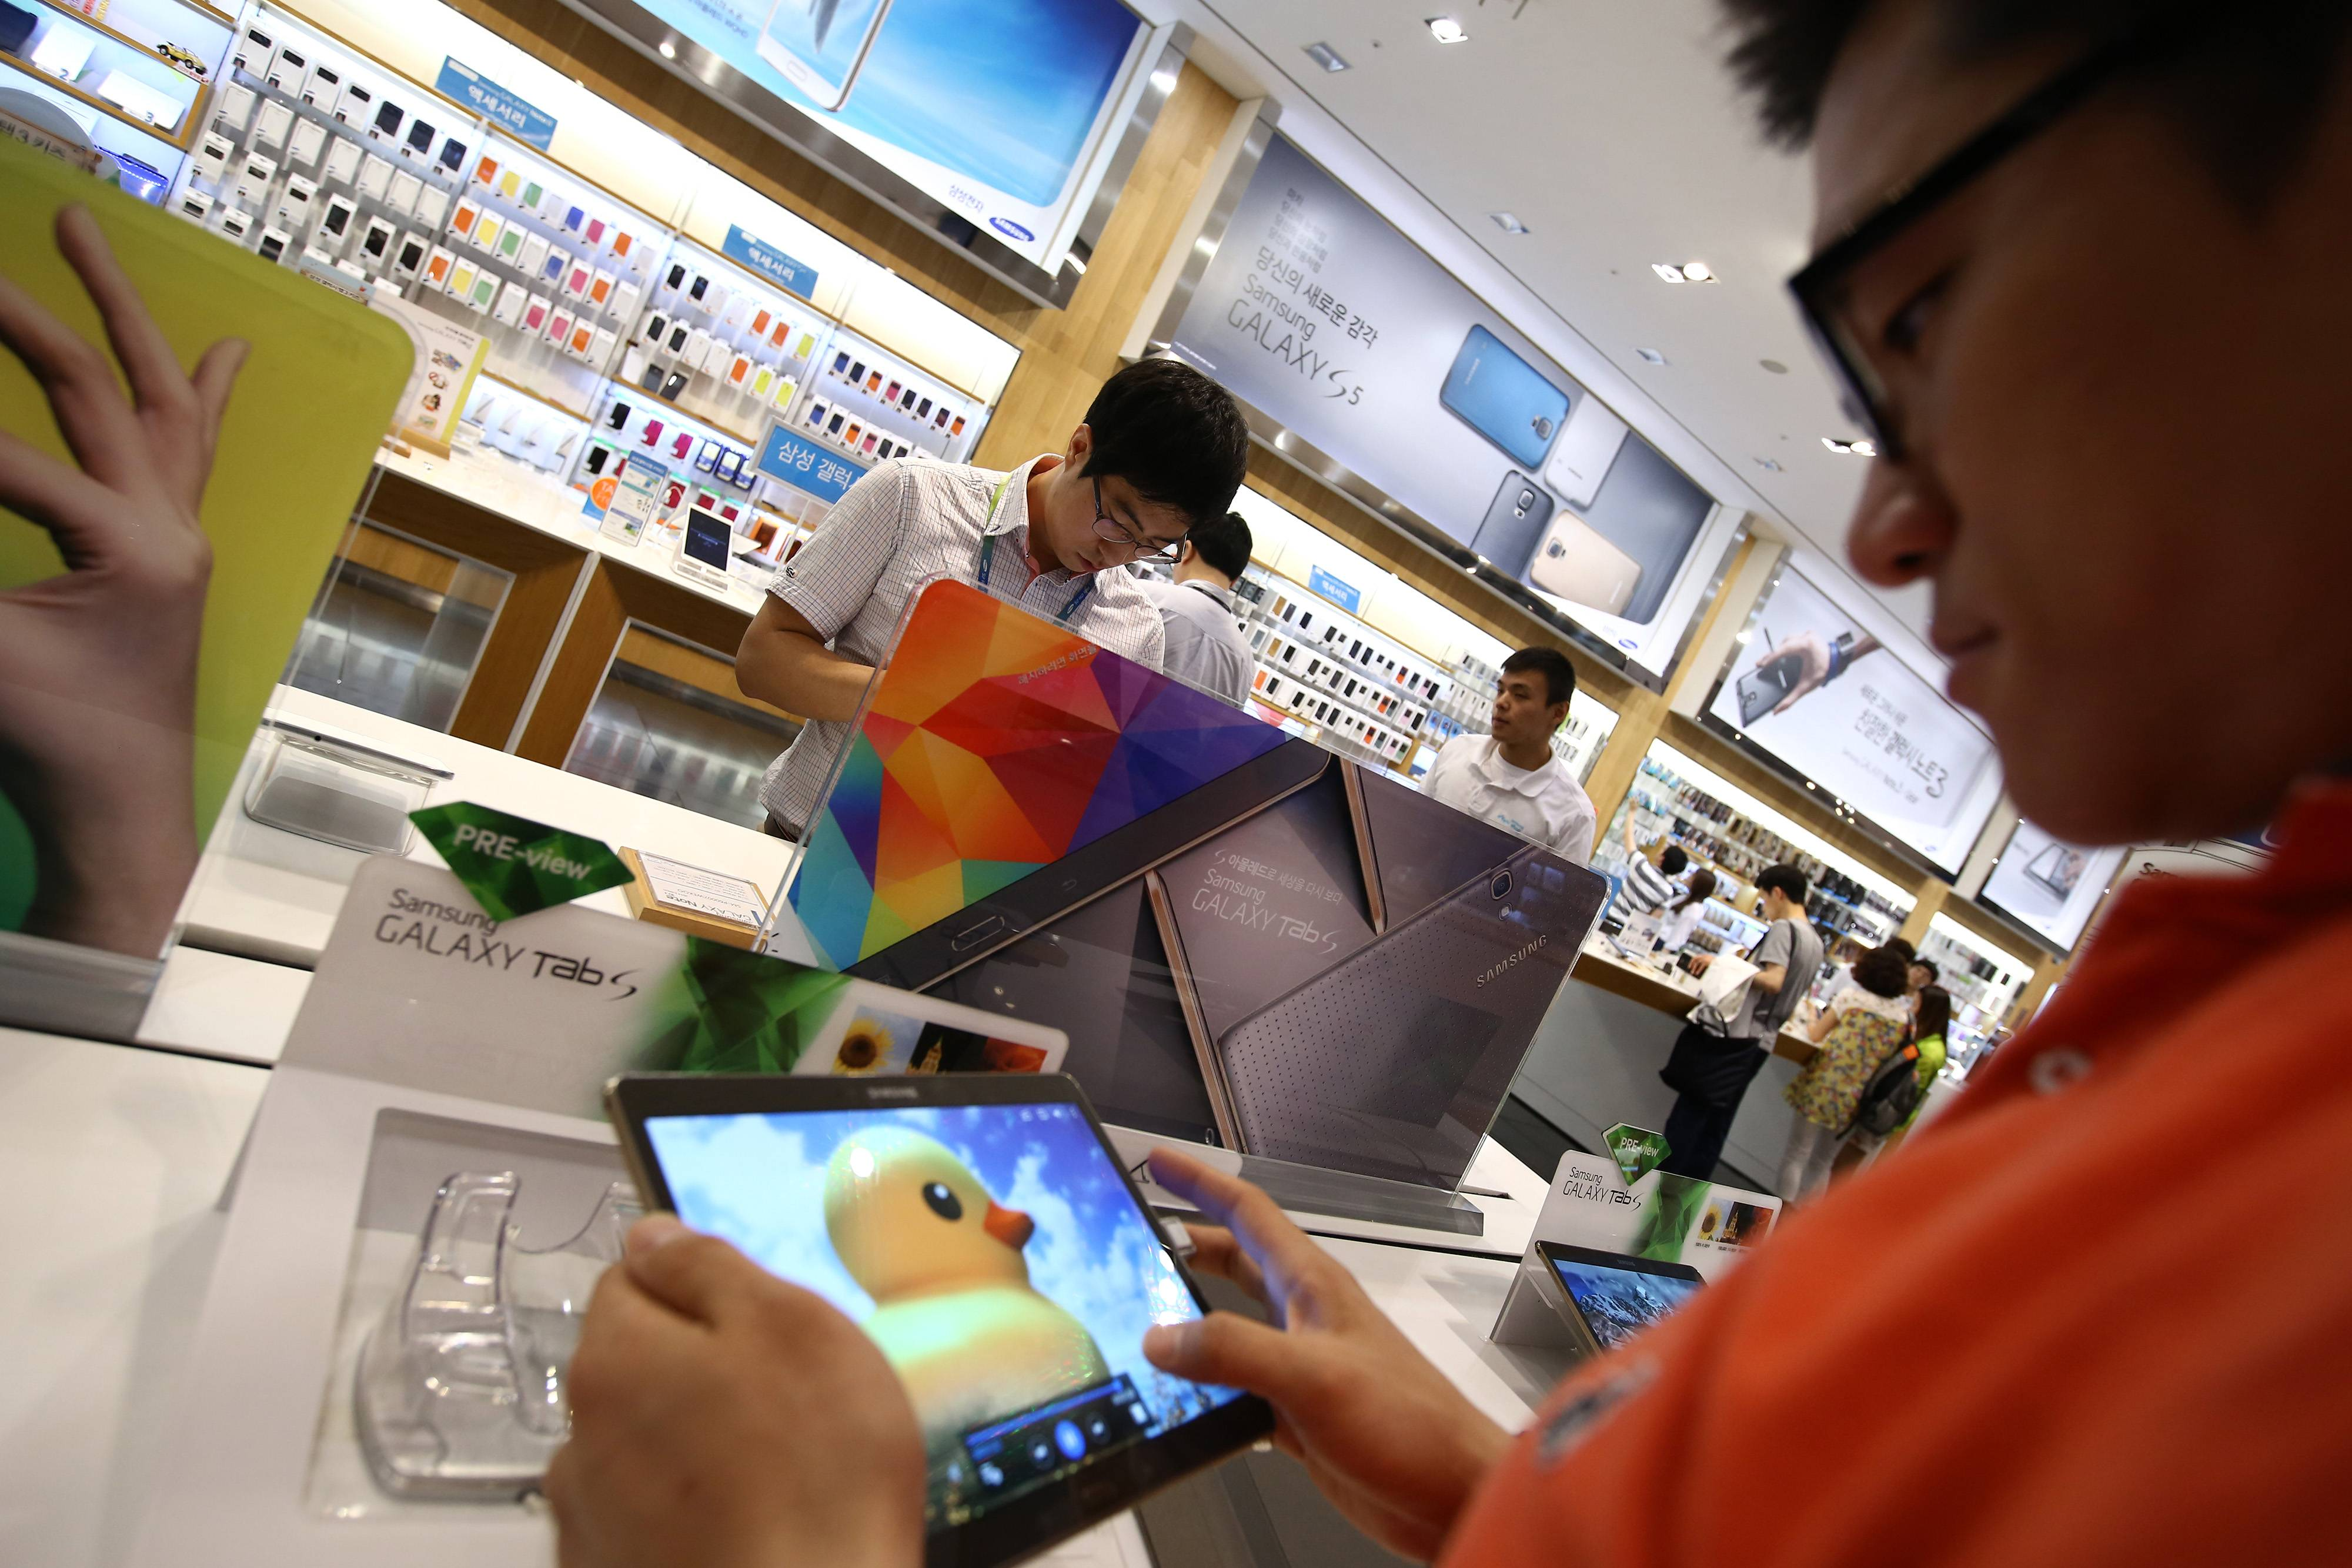 Customers try out Samsung Electronics Co. Galaxy Tab S tablet computers. The Lee family has held sway over Samsung Electronic's 74 companies, but the younger Lee will have to loosen the family's hold and ease protections against outside shareholders just as Samsung Electronics faces rising challenges to its position at the top of the smartphone market.